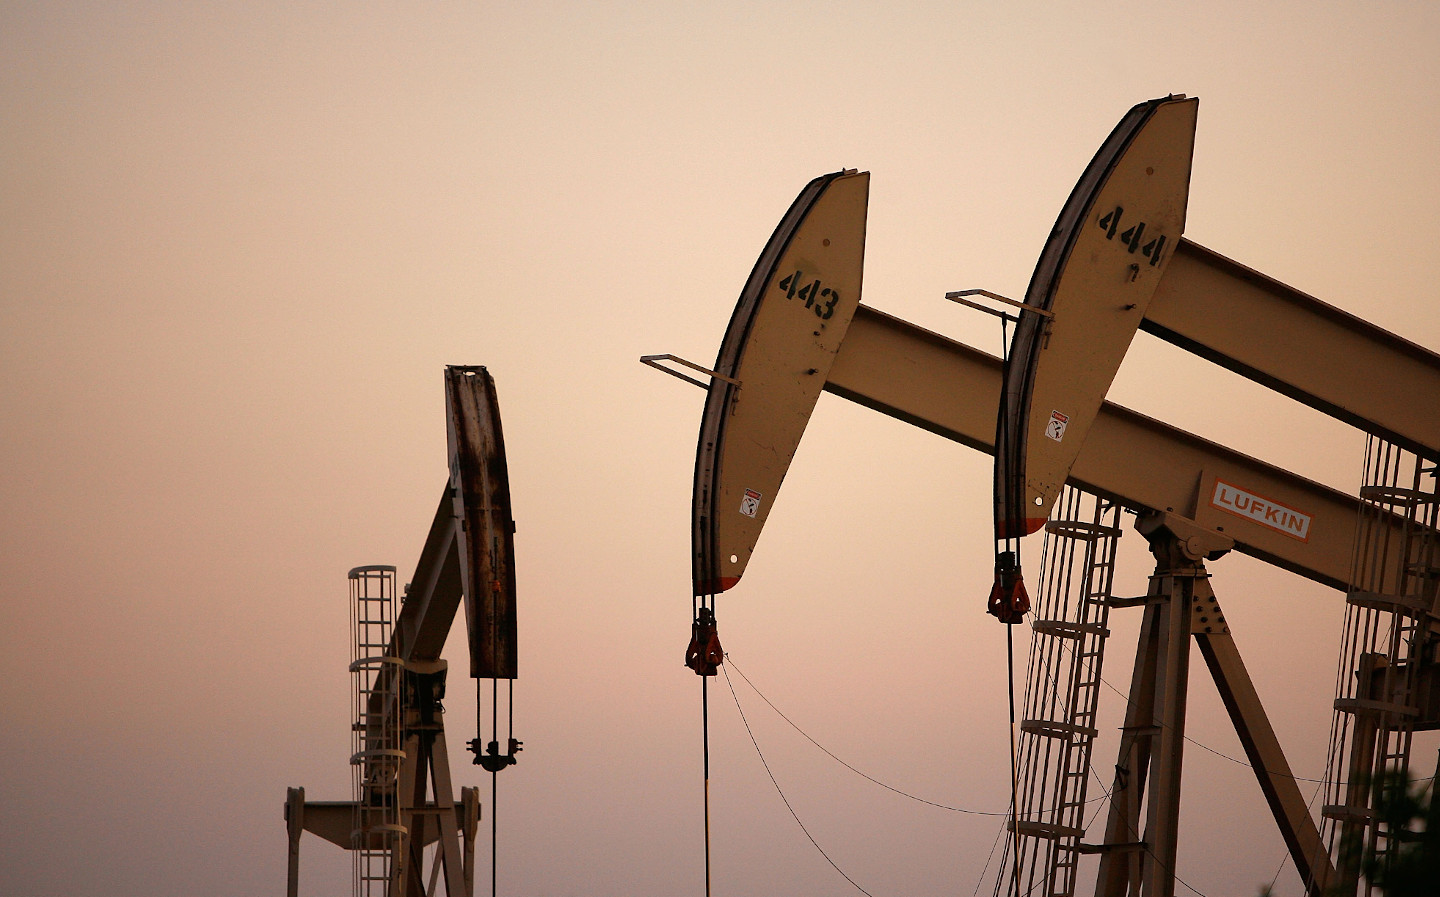 Oil prices rise as energy remains tight